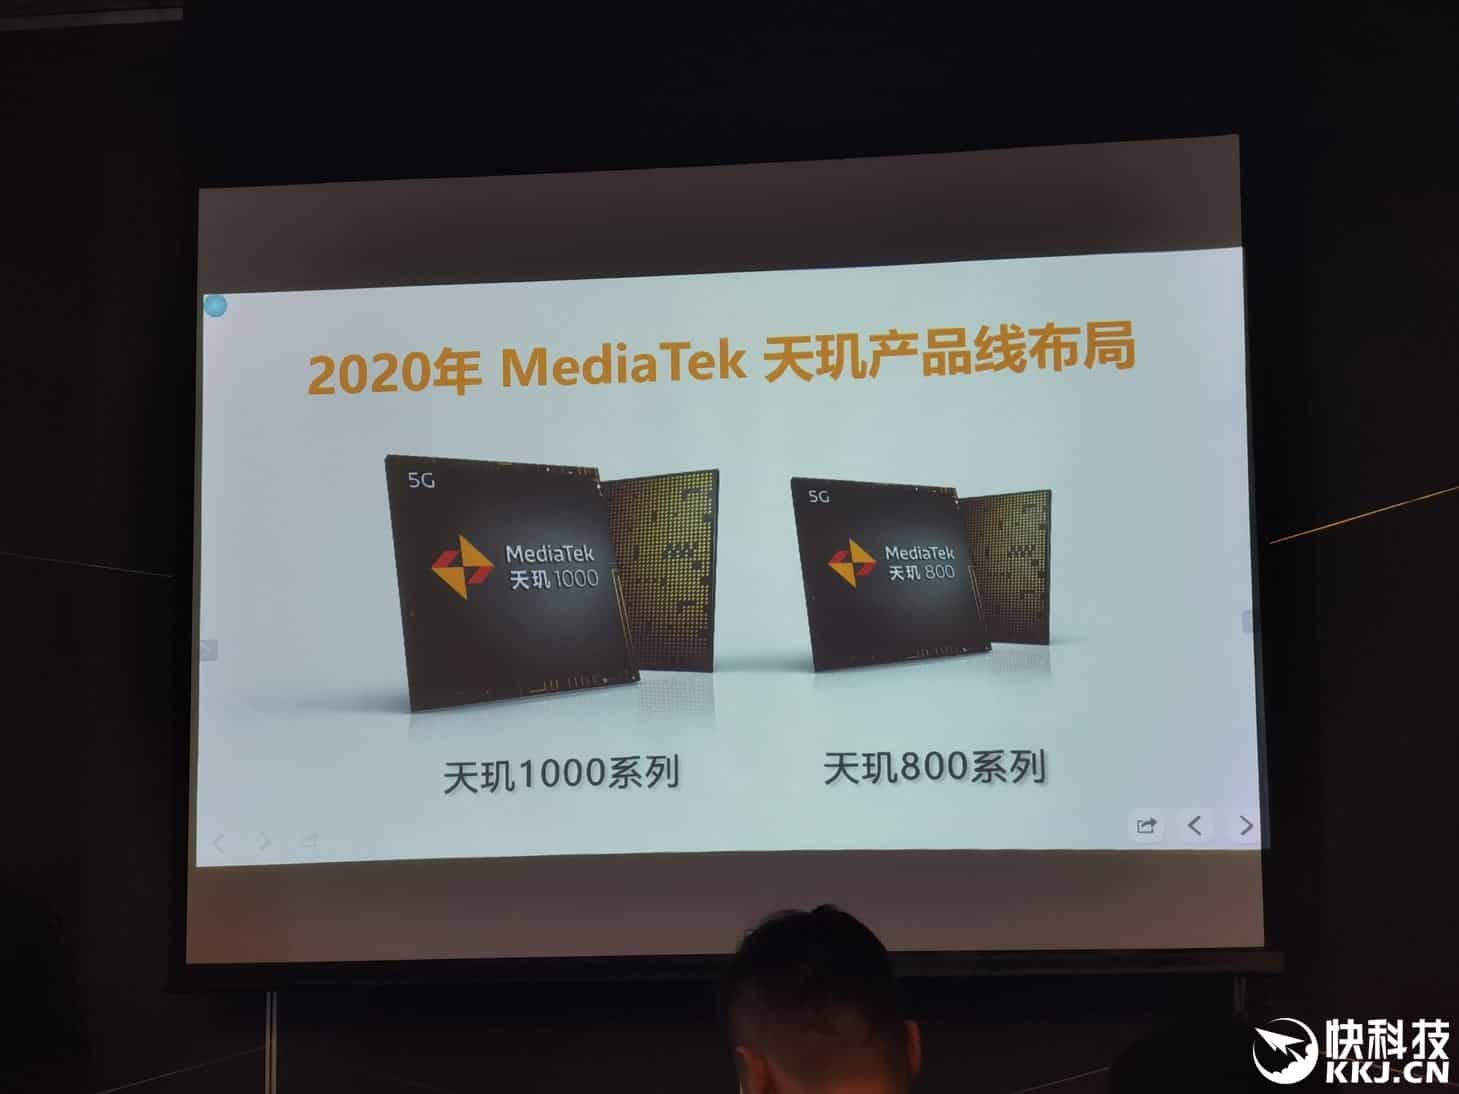 MediaTek Dimensity 800 Announced, Coming in Q2 2020